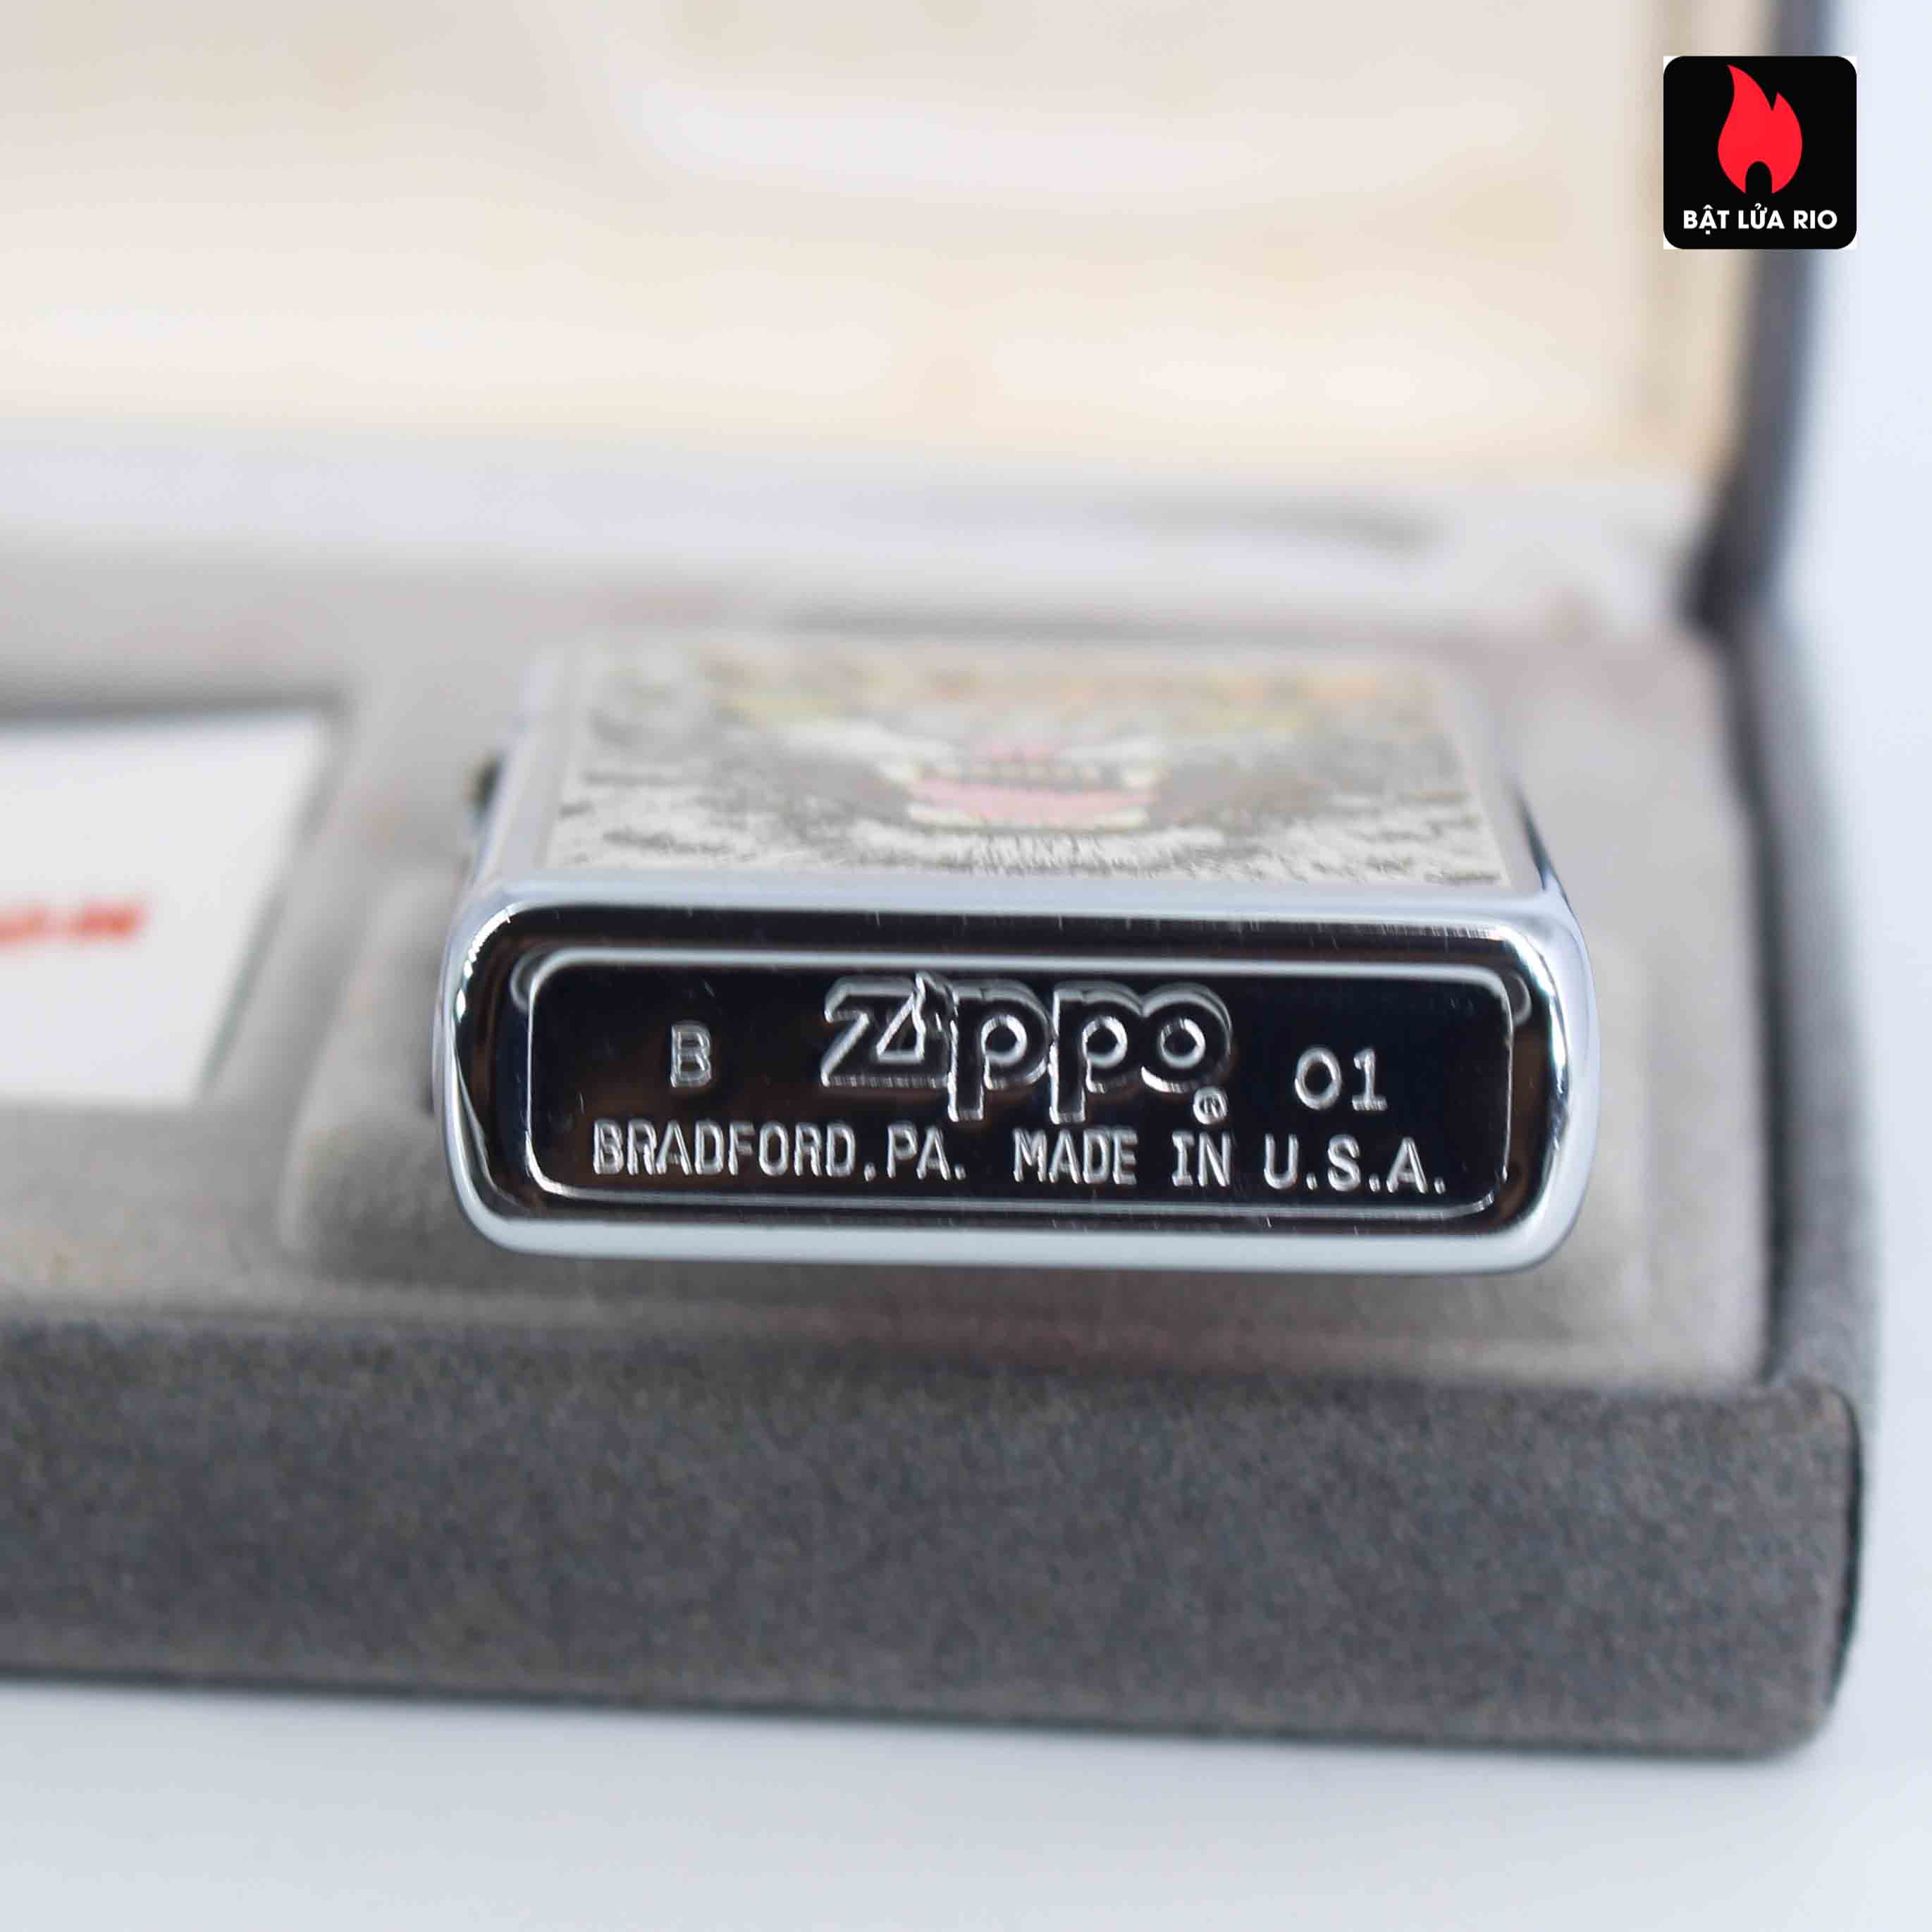 Zippo 2001 - Wild Lighters Edition - Limited Edition /1000 25